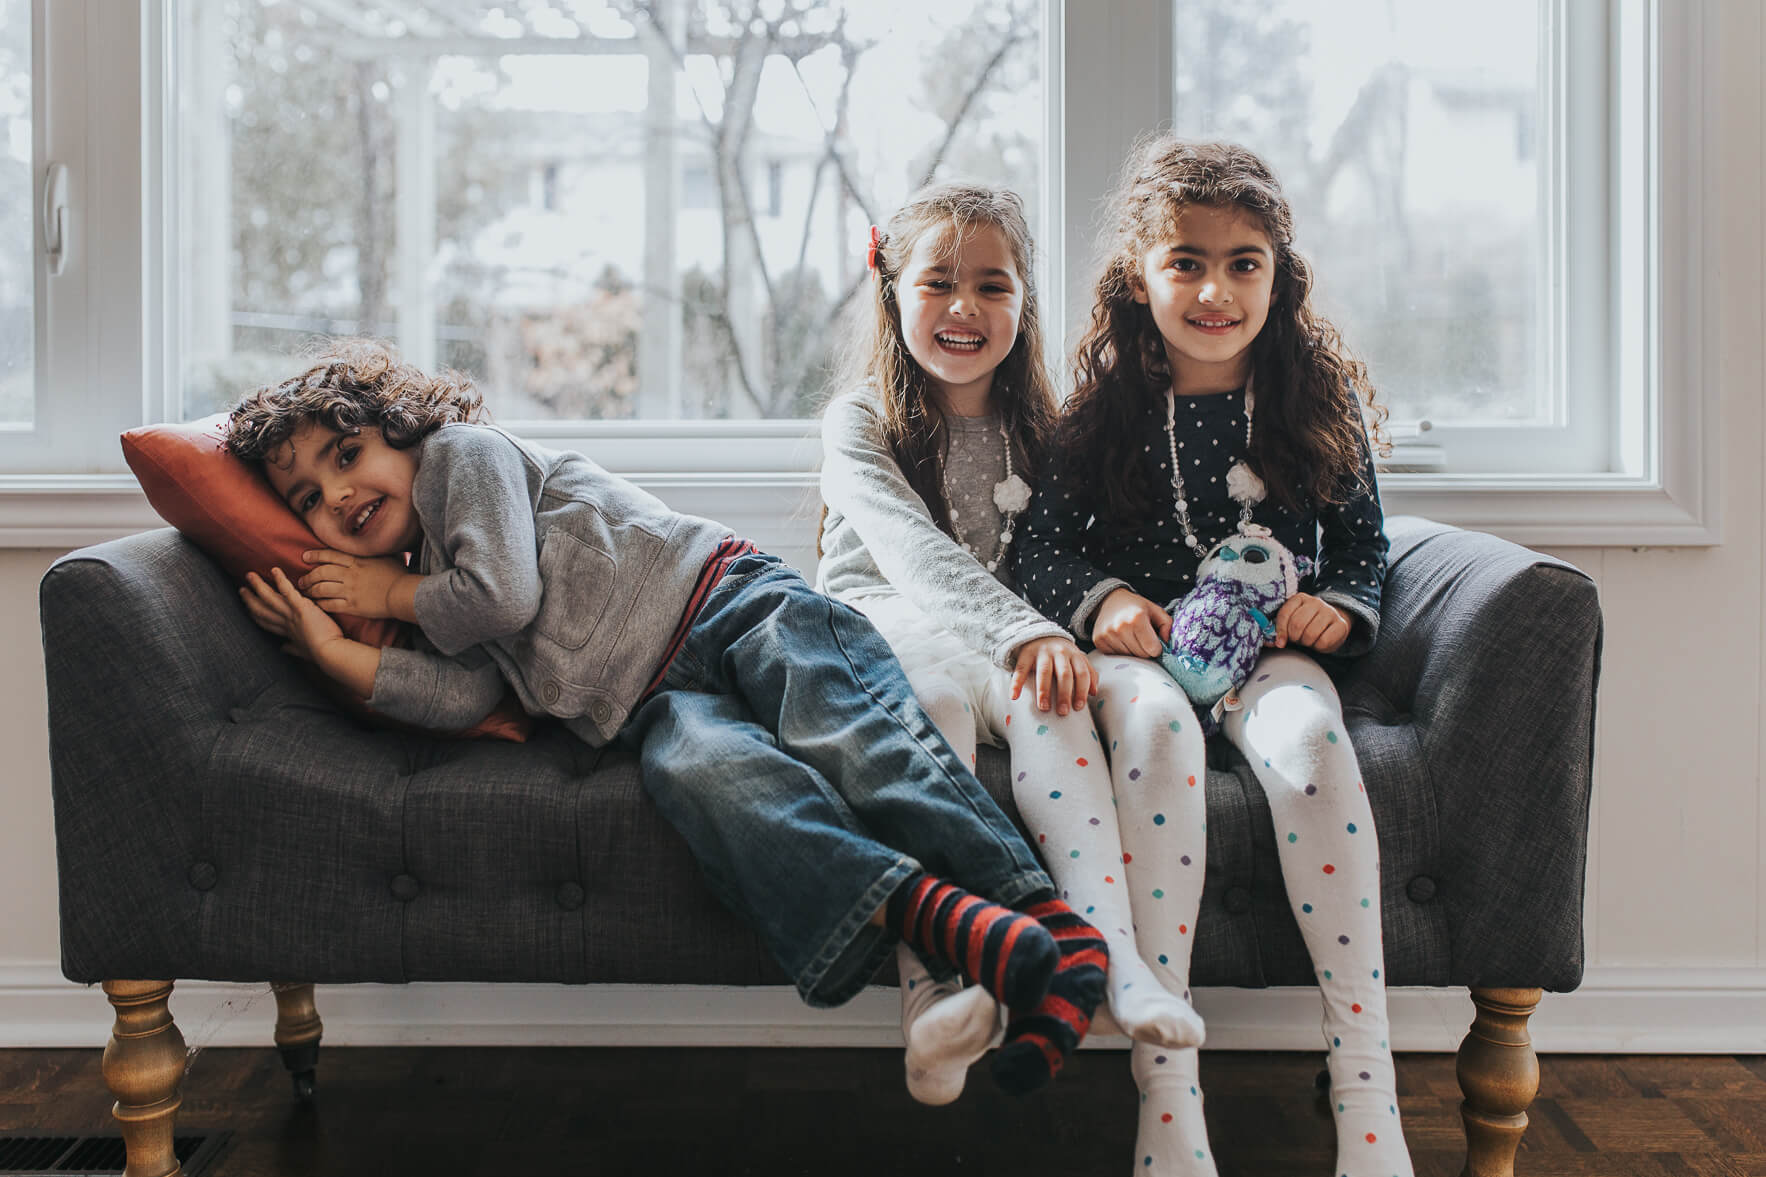 Brother and his twin sisters laughing on a couch